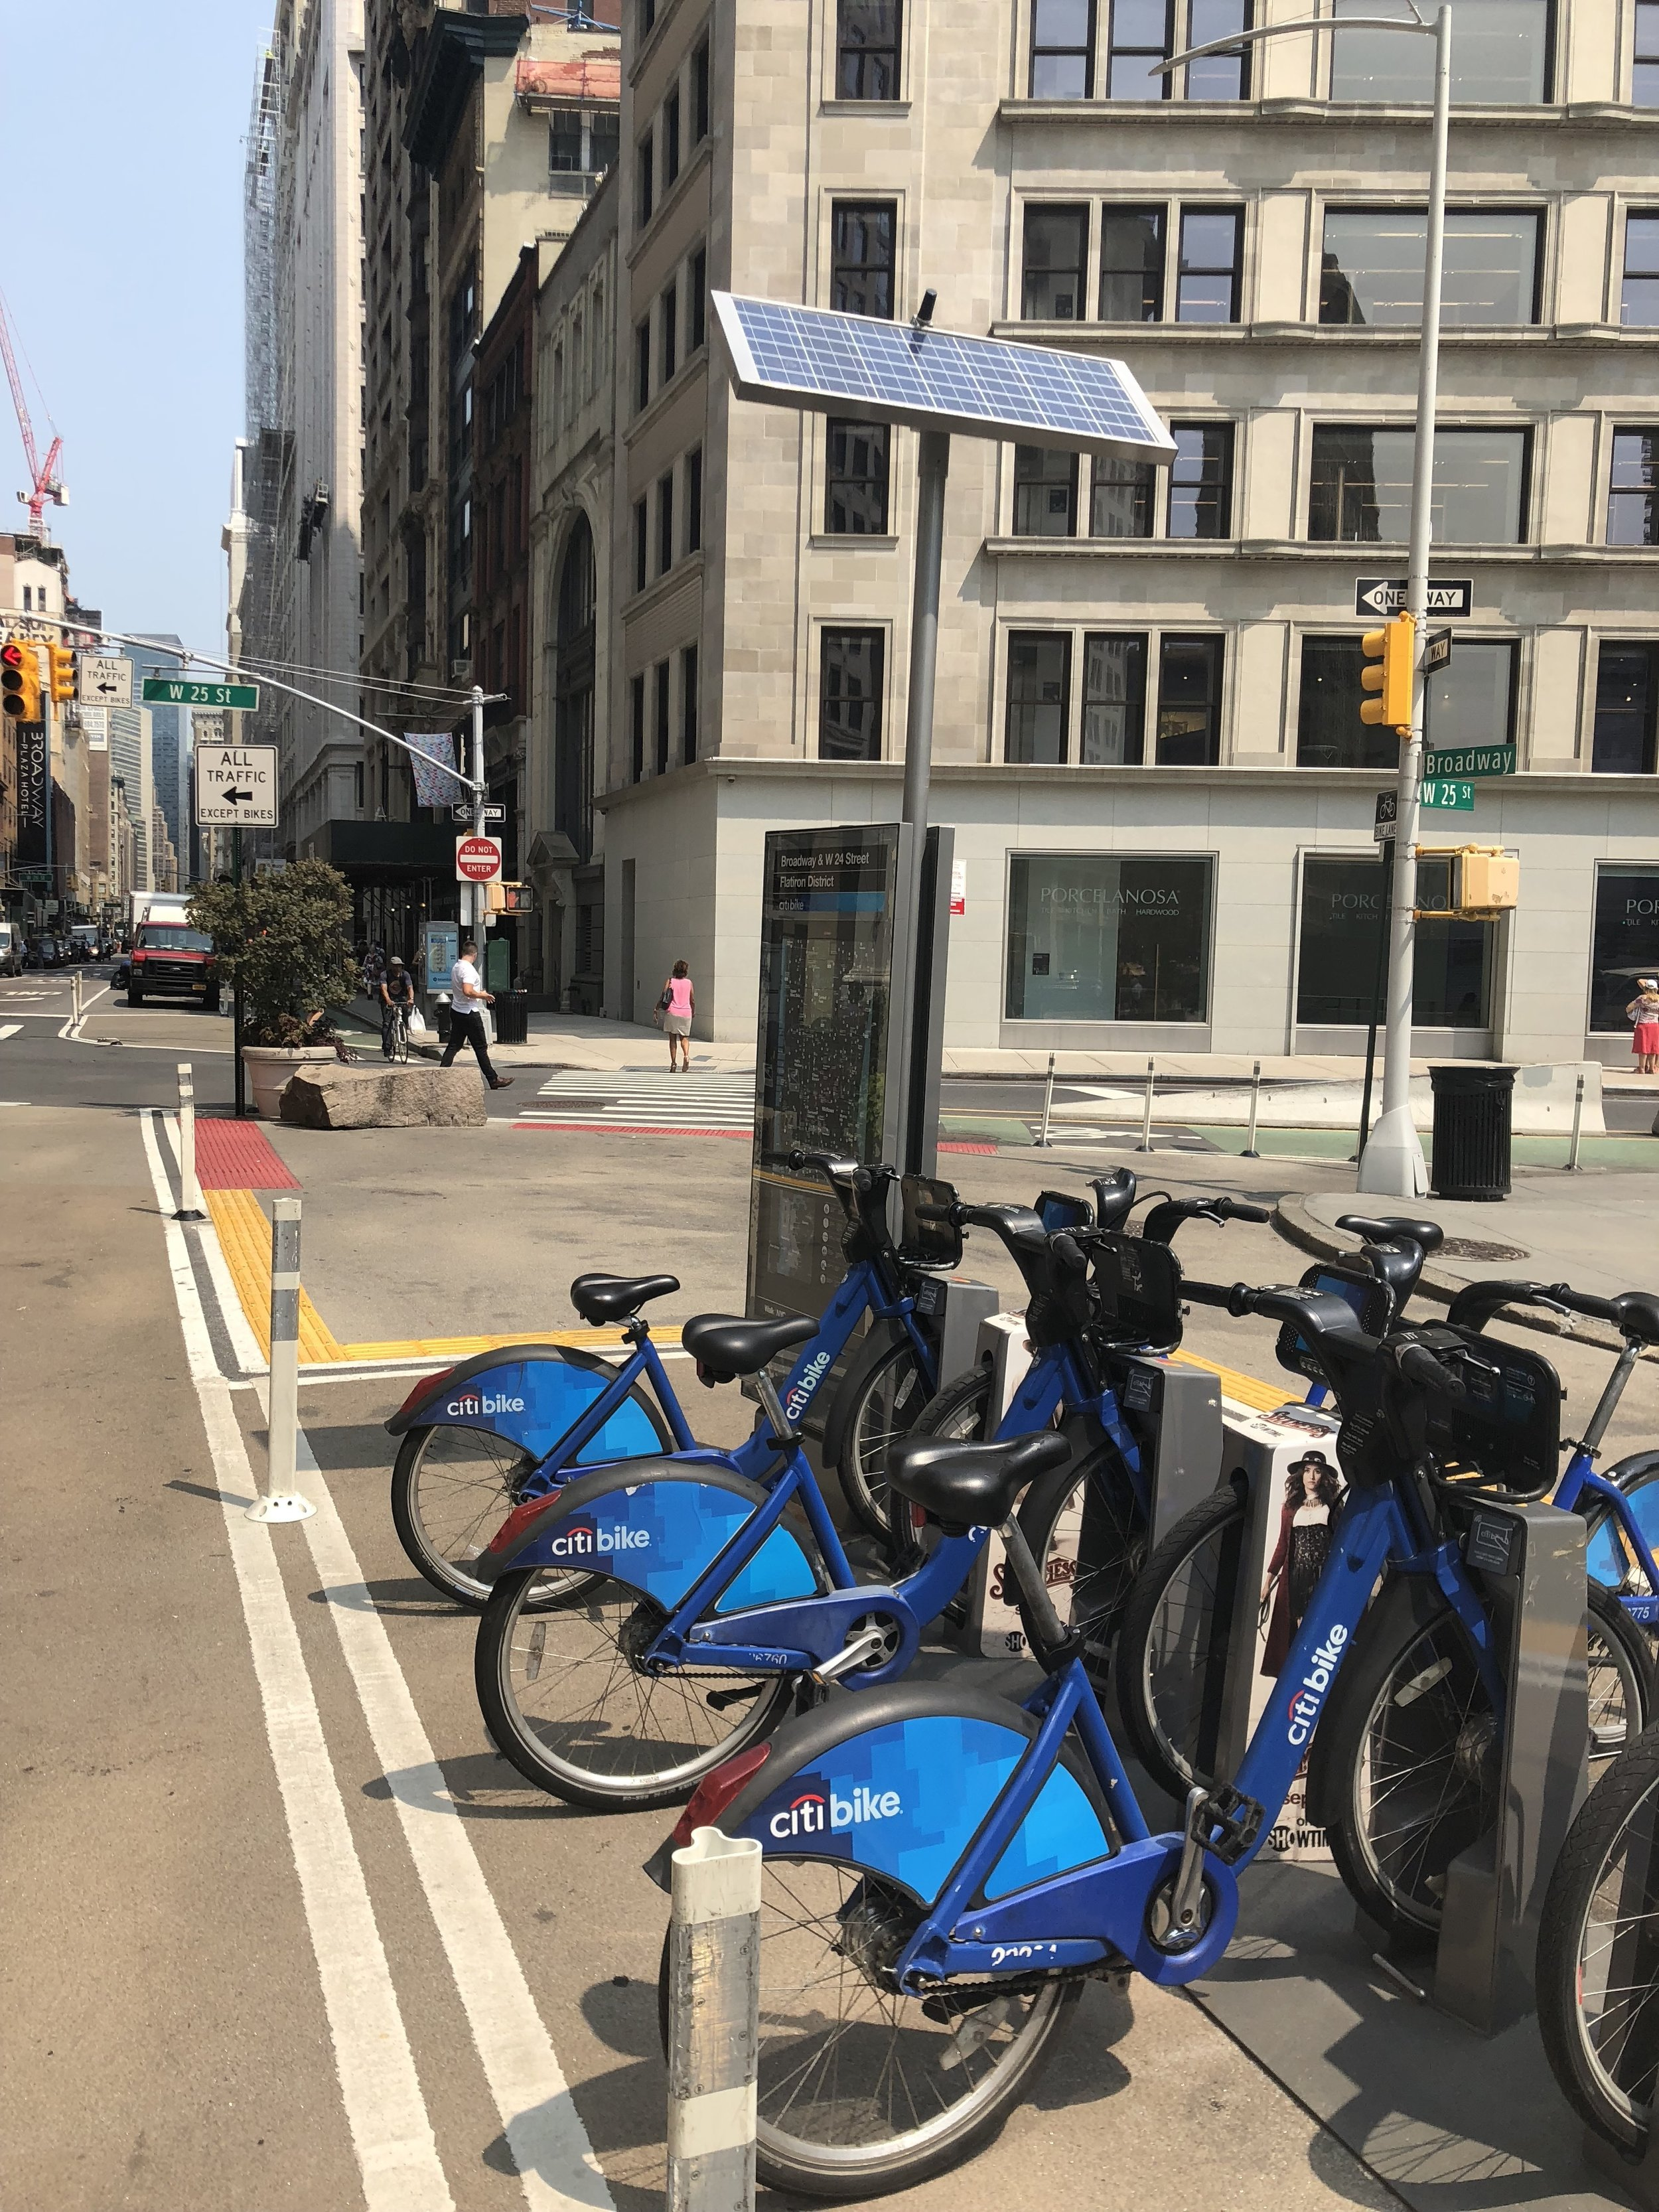 Citi Bike docking station in beautiful, sunny Madison Square Park